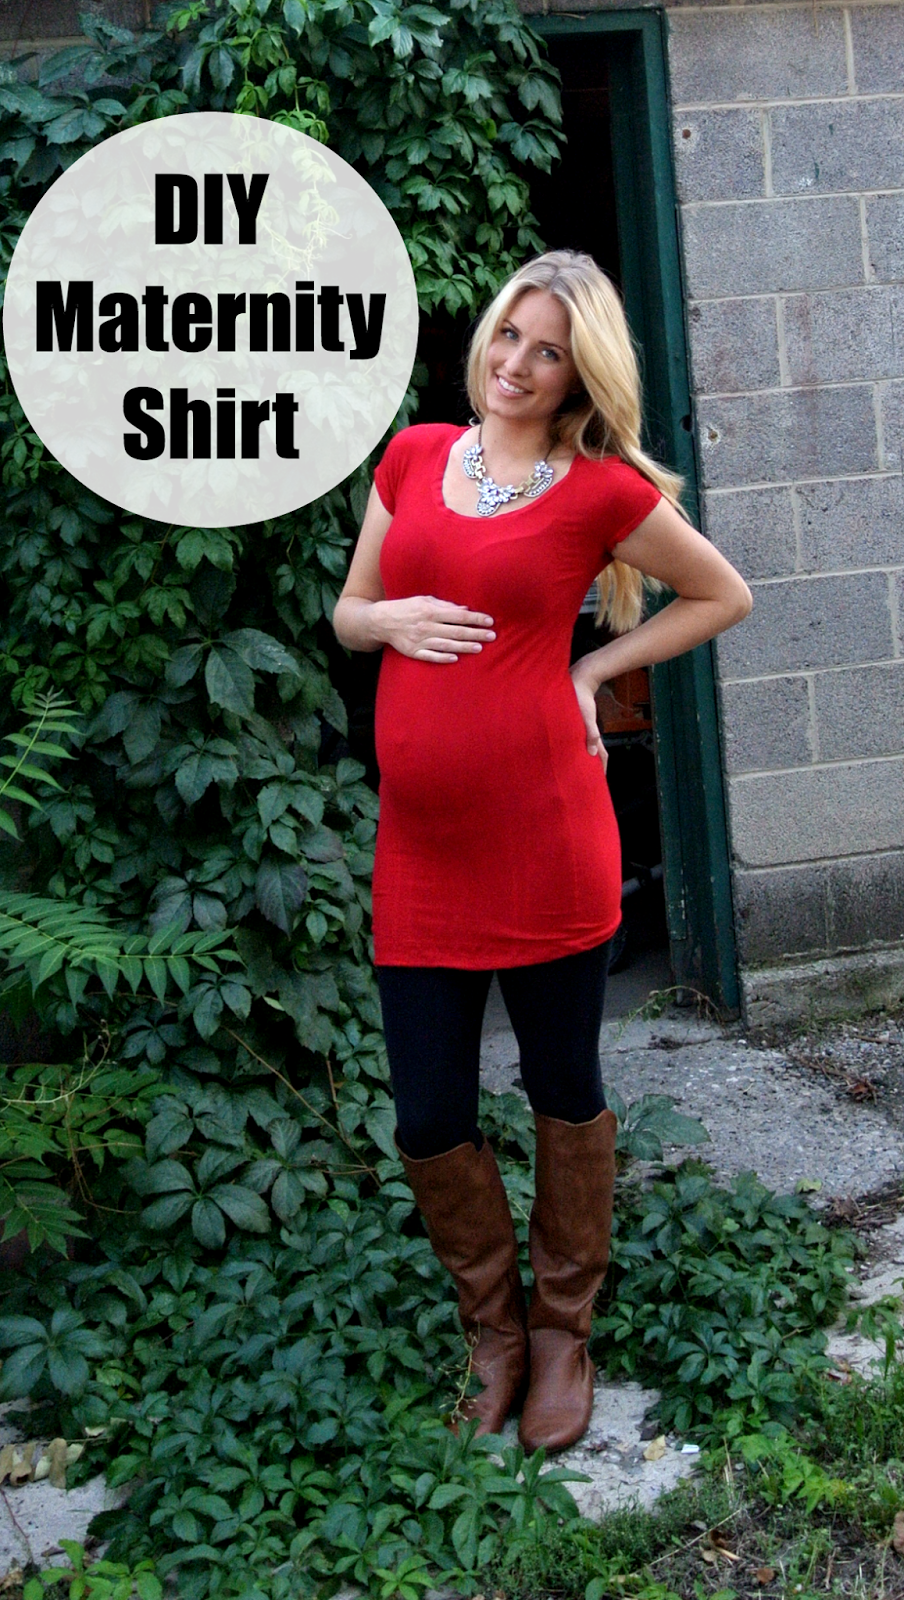 Simple diy maternity top.  She uses an old shirt as a pattern.